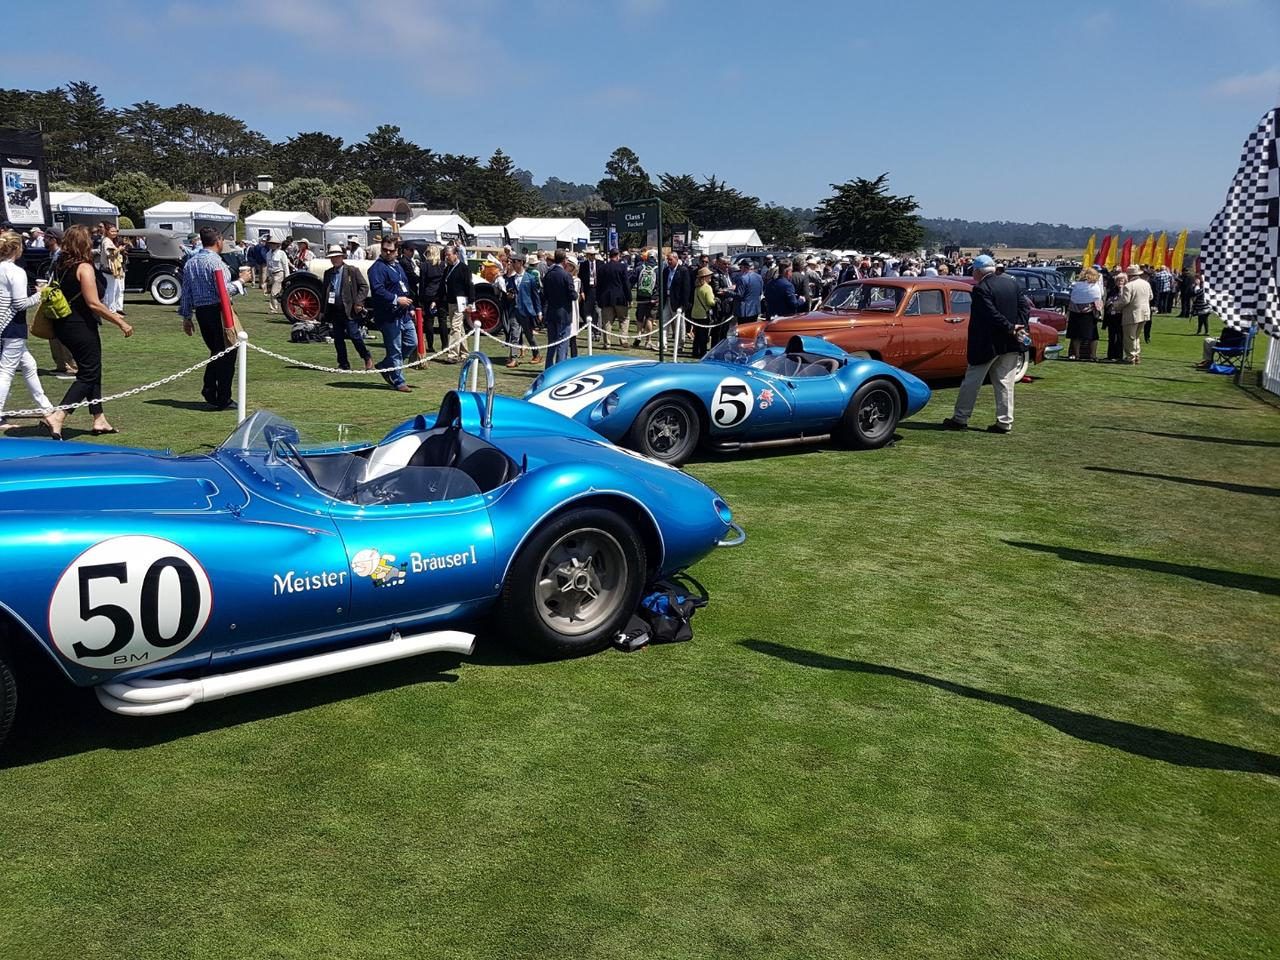 1958 Scarab race cars & Tuckers line Pebble Beach's fairway at this year's Concours d'Elegance